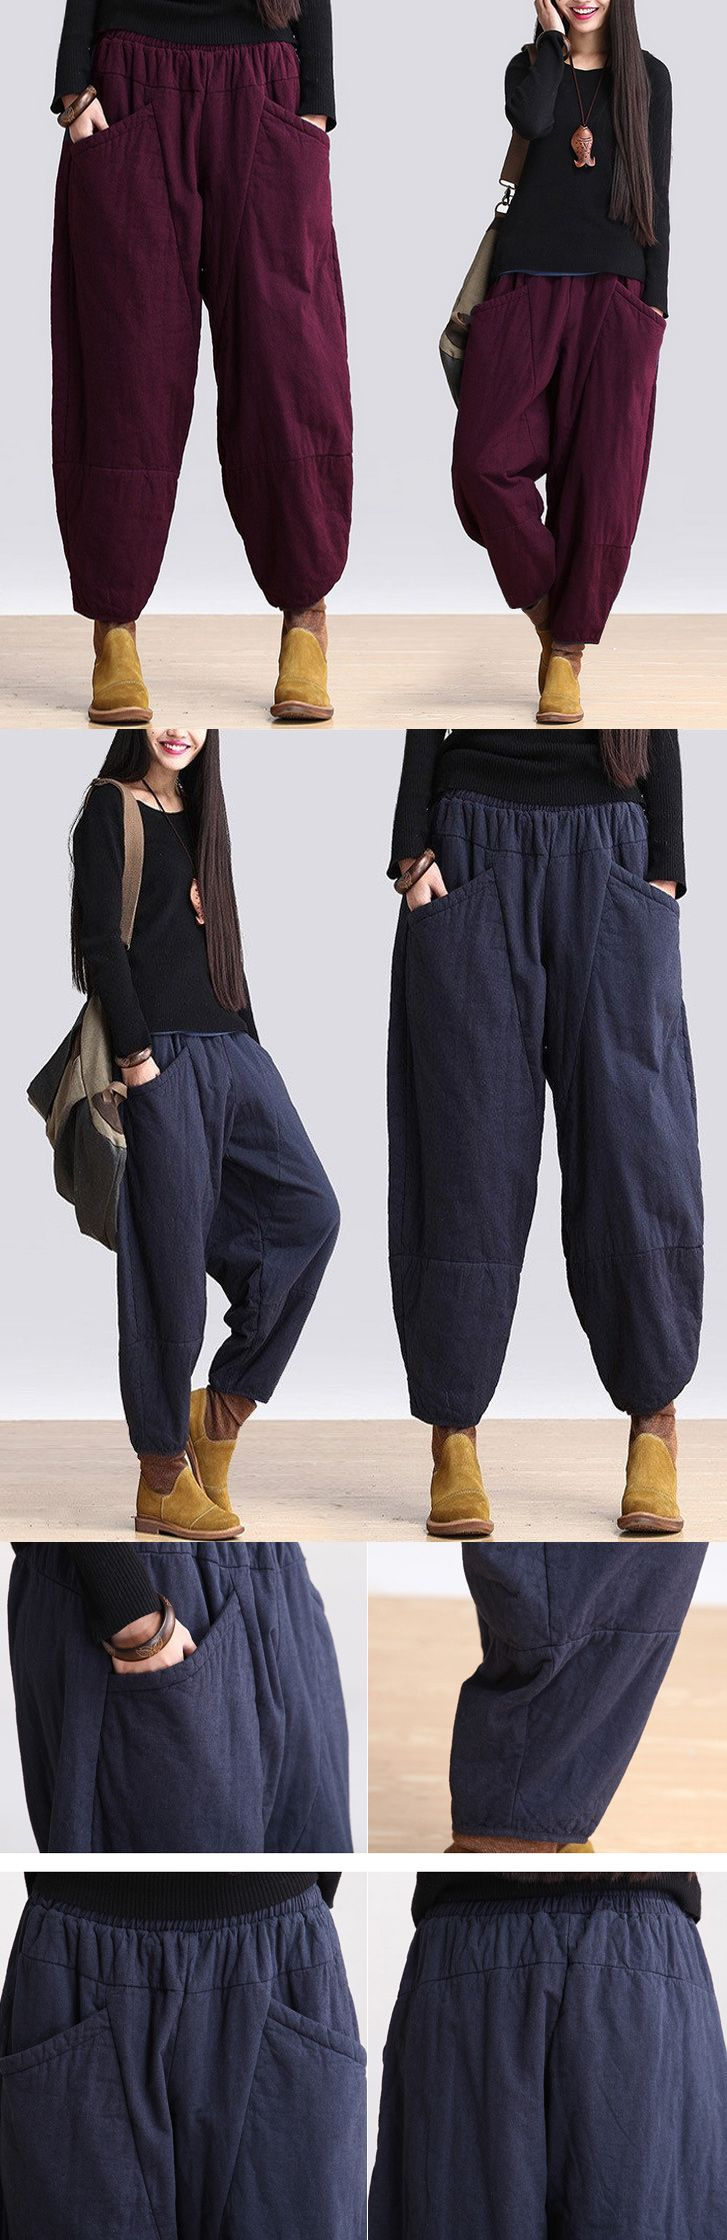 Cotton spring and winter pants.do you like this style? welcome to buykud.com